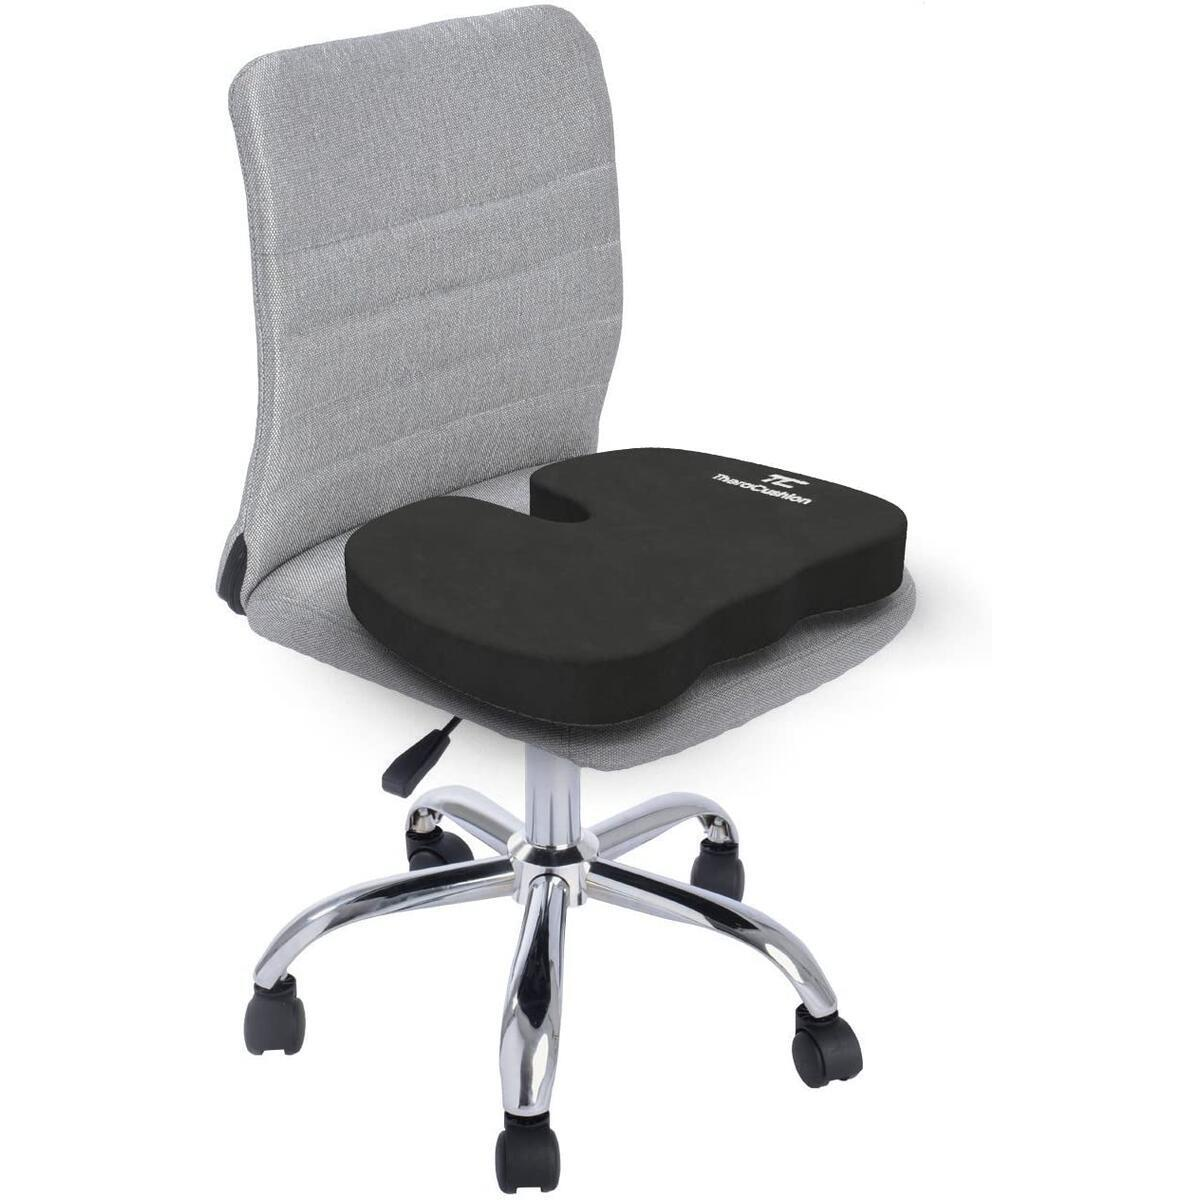 TheraCushion Seat Cushion - for Car/Home/Office